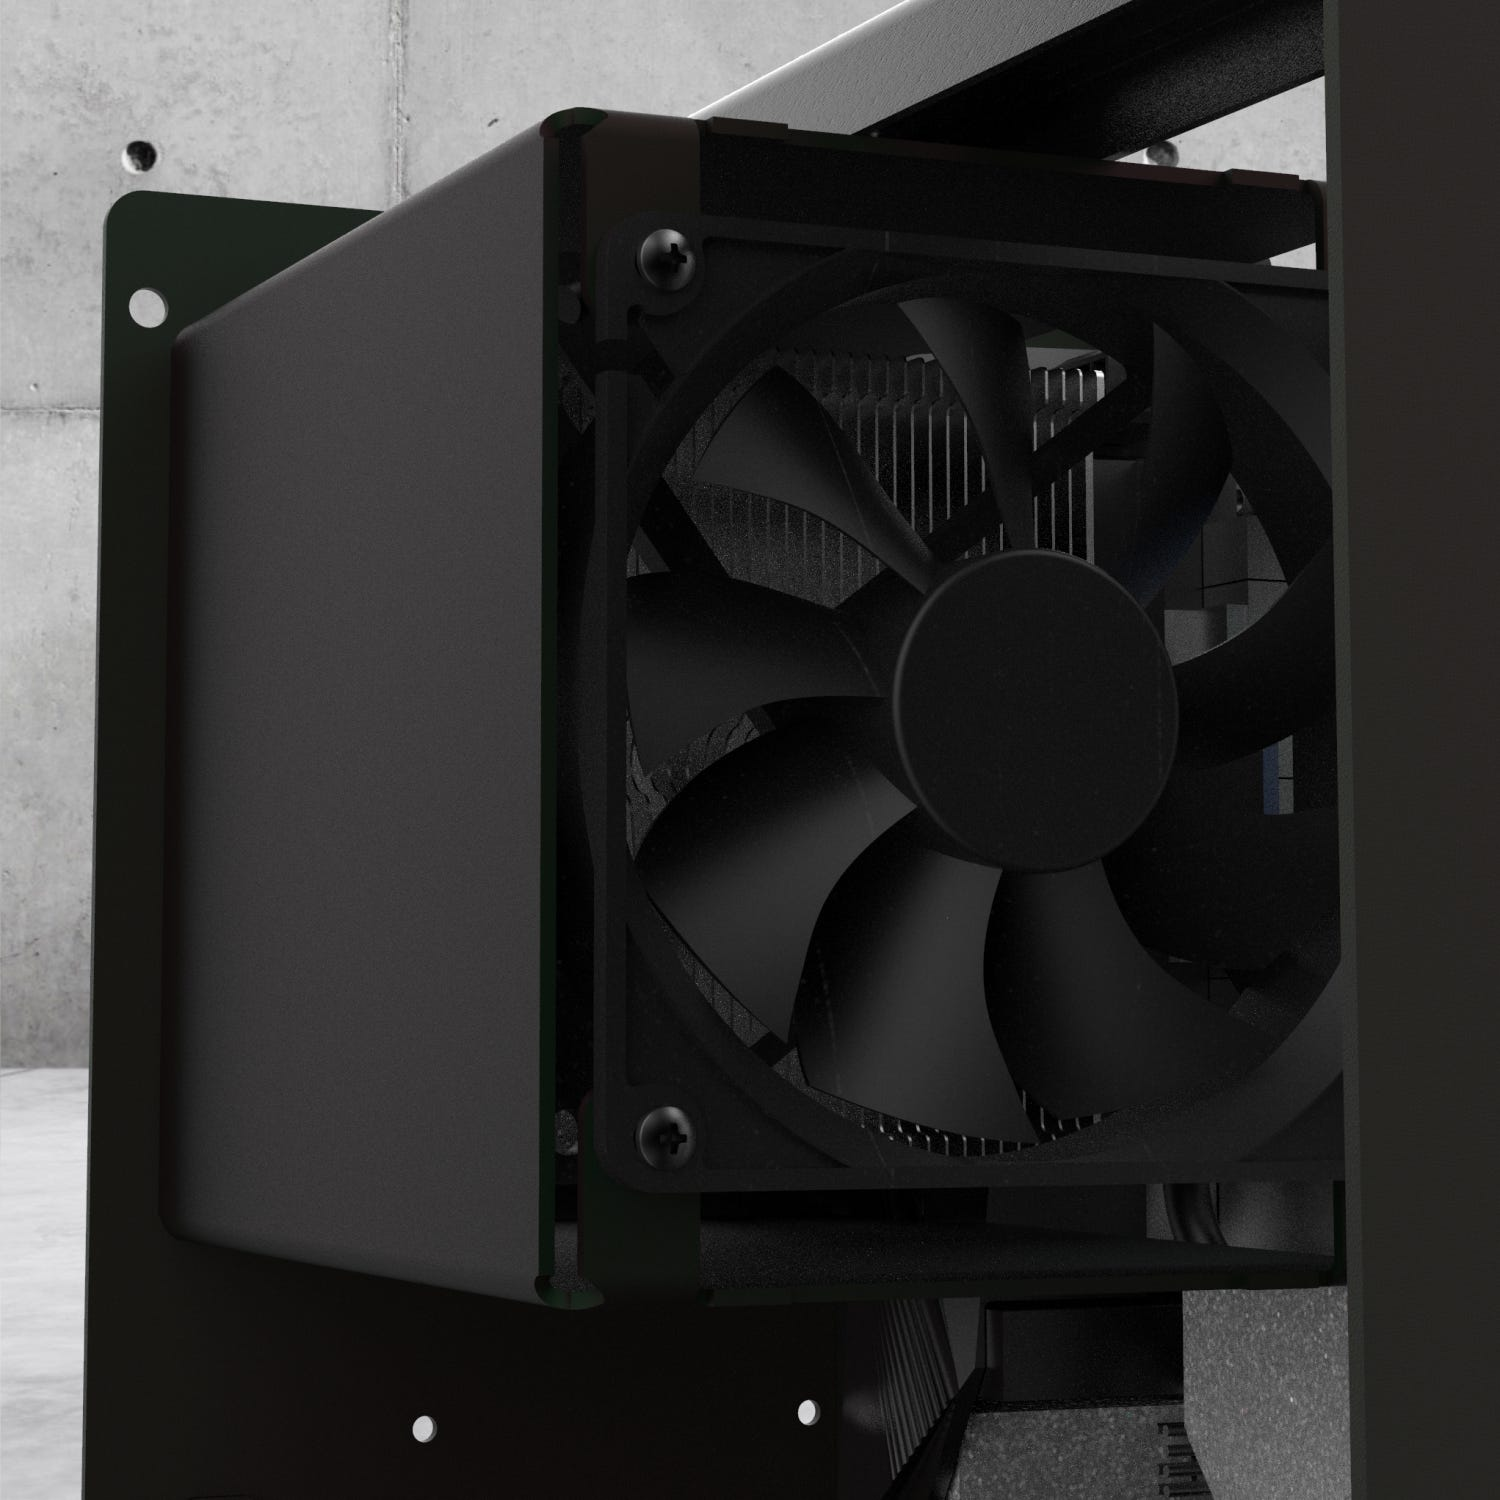 Detail of the CPU cooling duct with fan.